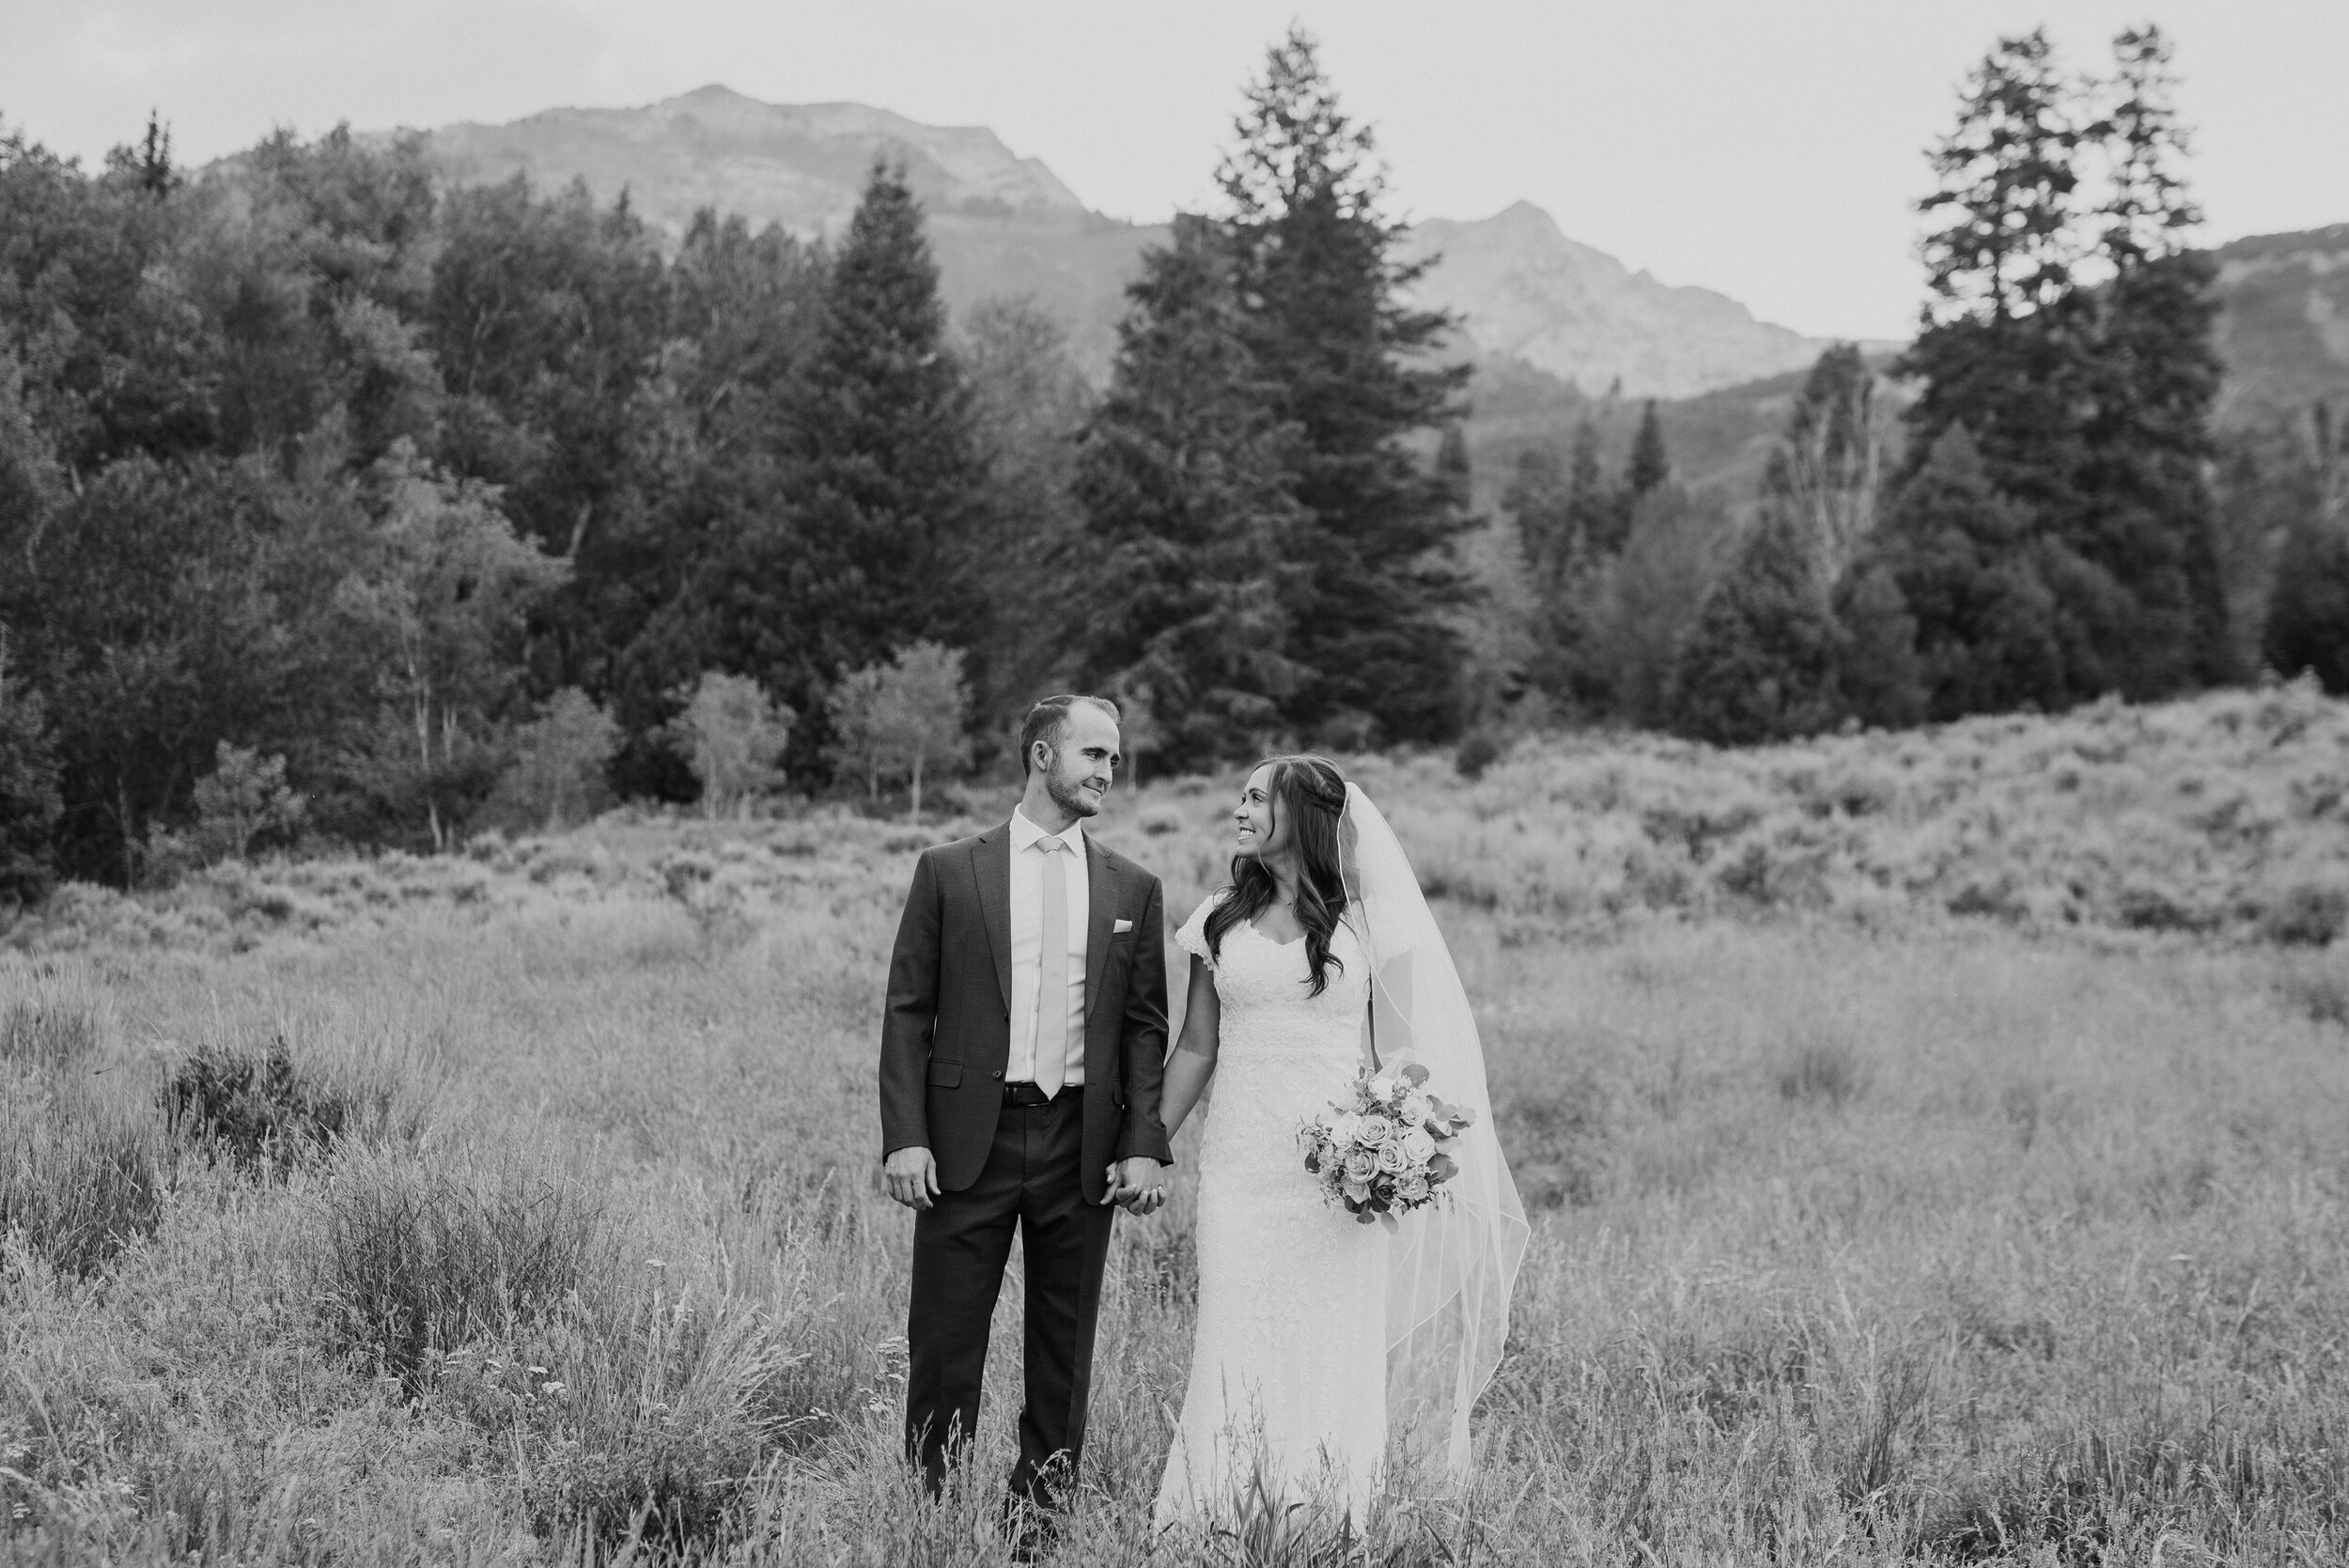 A classic black and white shot of a lovely couple looking into each other's eyes and smiling while strolling in tall grass. Holding hands walking through the grass evergreen trees black and white photography exchanged looks wide landscape #husbandandwife #younglove #tibbleforkreservoir #utahwedding #americanforkcanyon #coupleshoot #formals #weddingphotography #couplesgoals #couplephotography #weddingphotographer #couplesphotography #groom #bride #blackandwhite